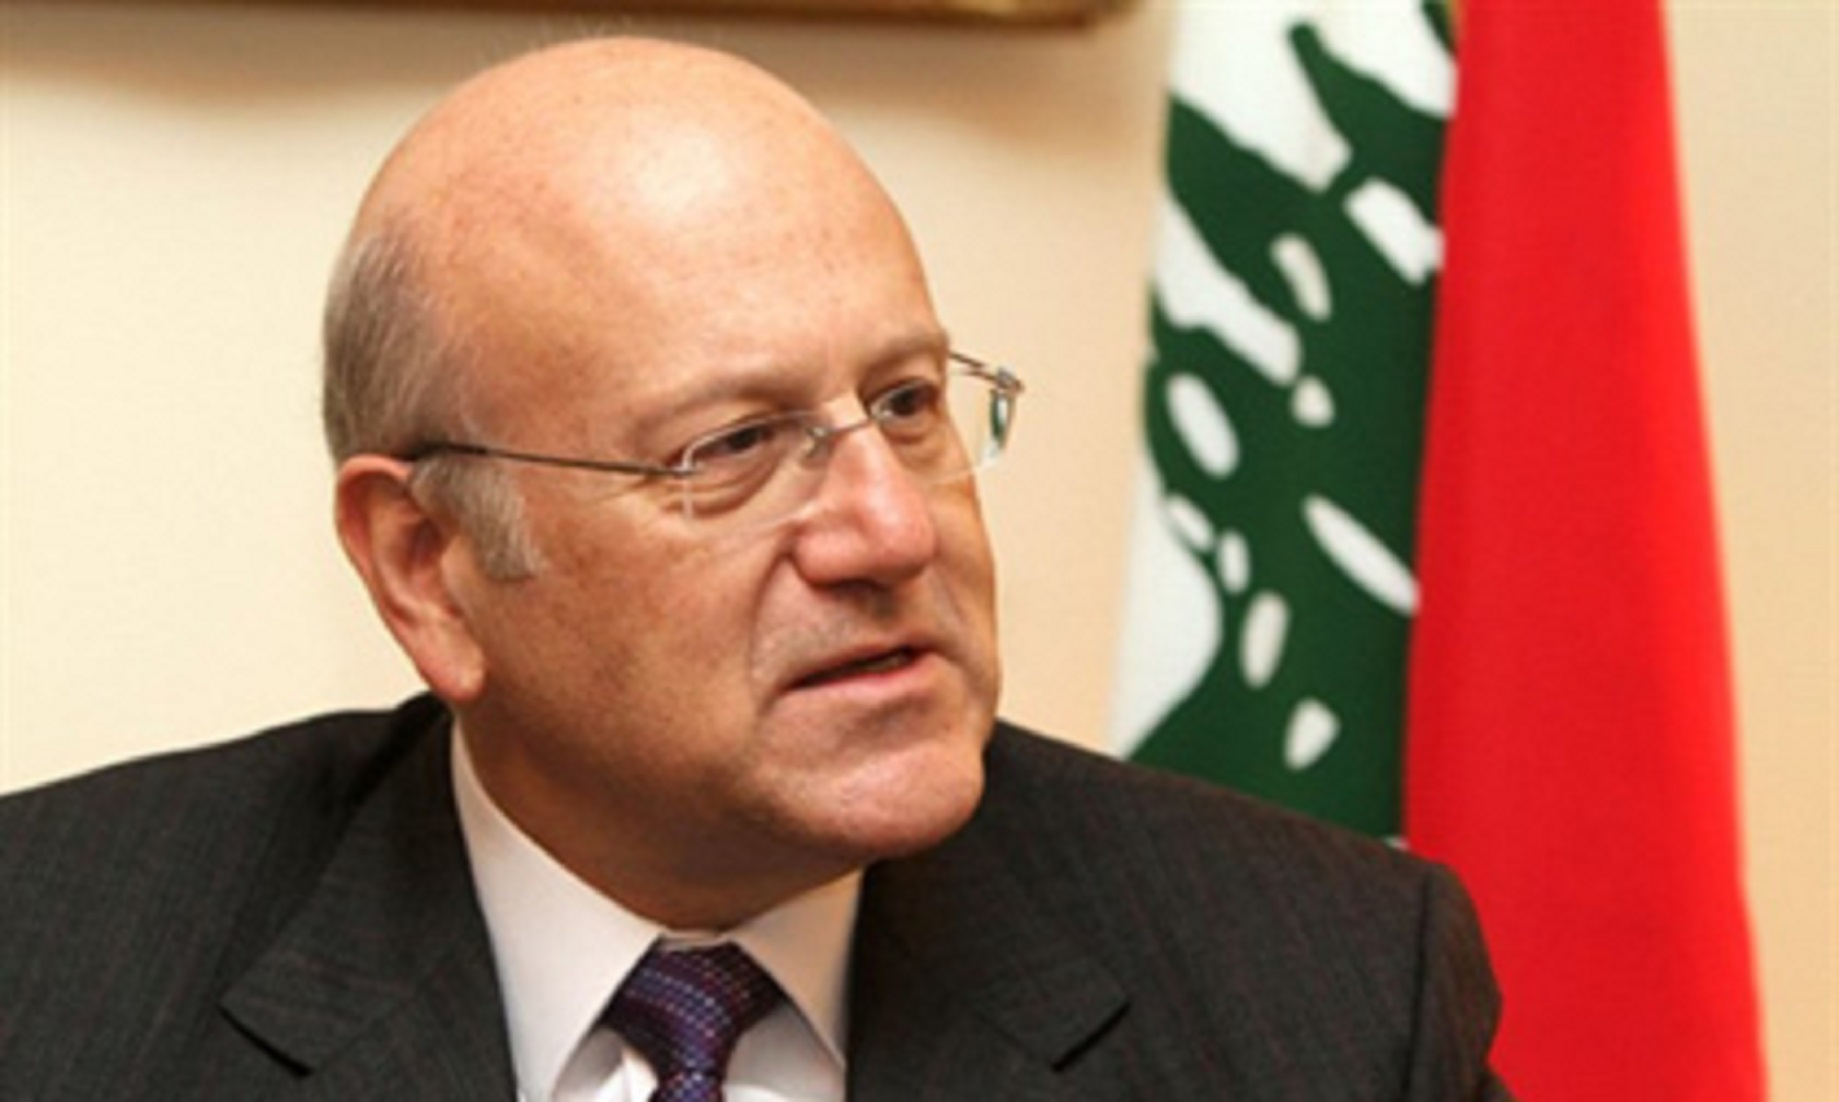 Newly Appointed Lebanese PM Vows To Form Cabinet Quickly